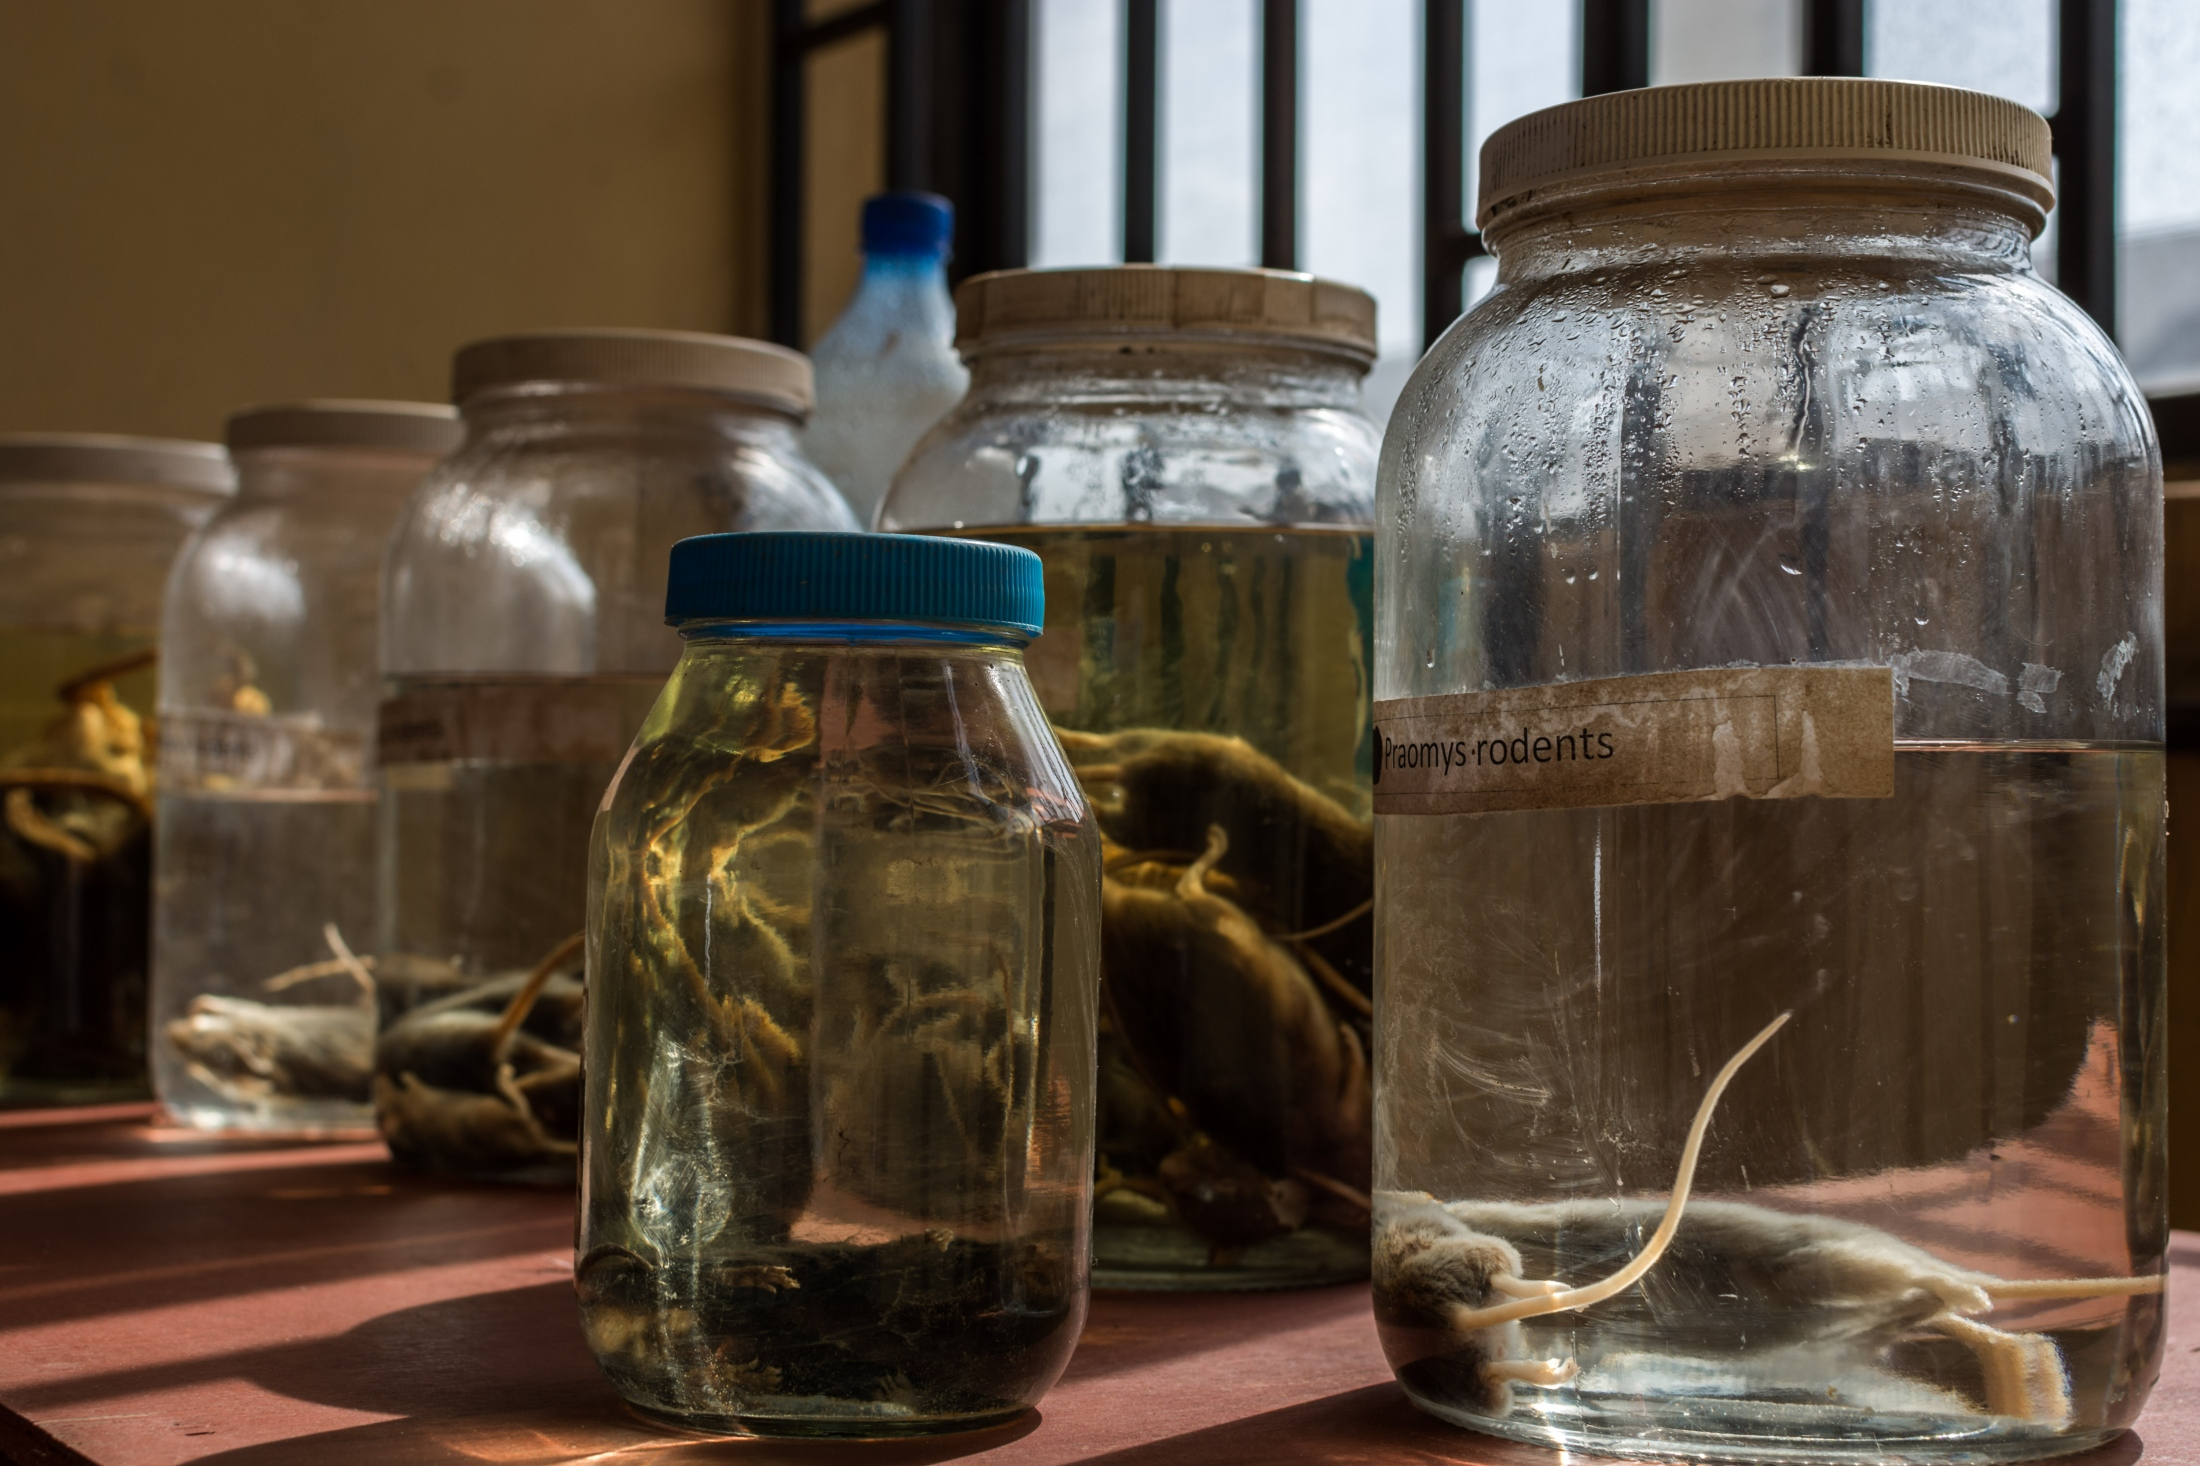 Various species of carriers of the Lassa Virus are put on display at the Lassa Ward in the Irrua Specialist Teaching Hospital, Edo state. The species which are preserved with formalin are put on display so that members of the public can identify the Lassa carriers.